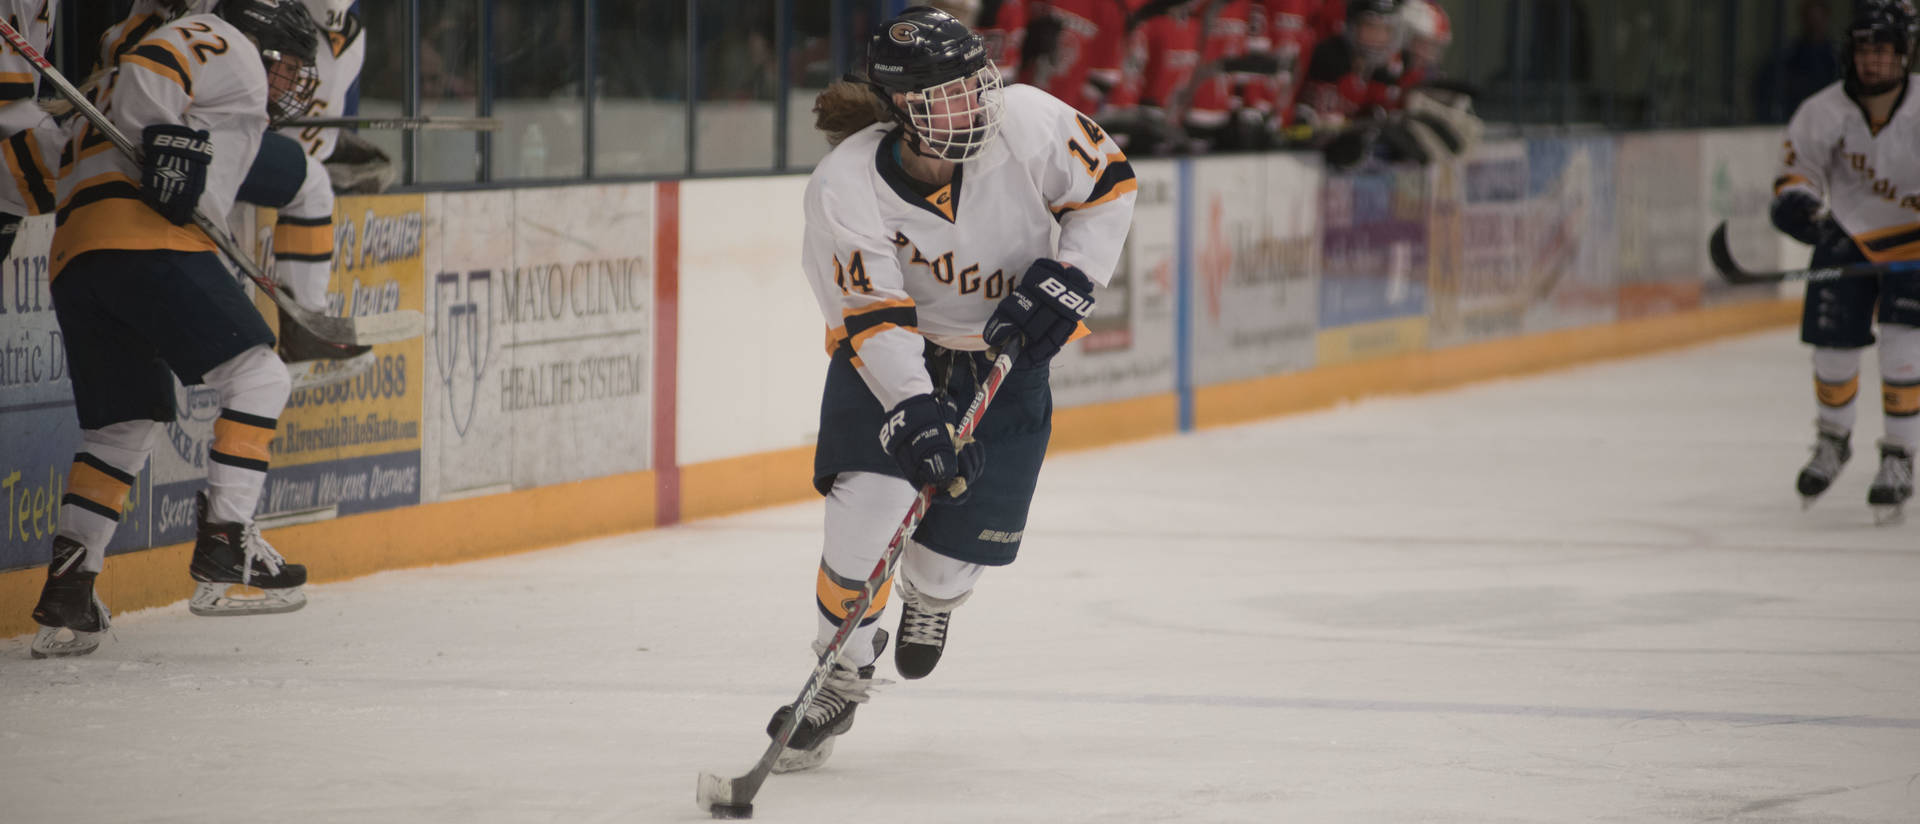 Courtney Wittig, women's hockey